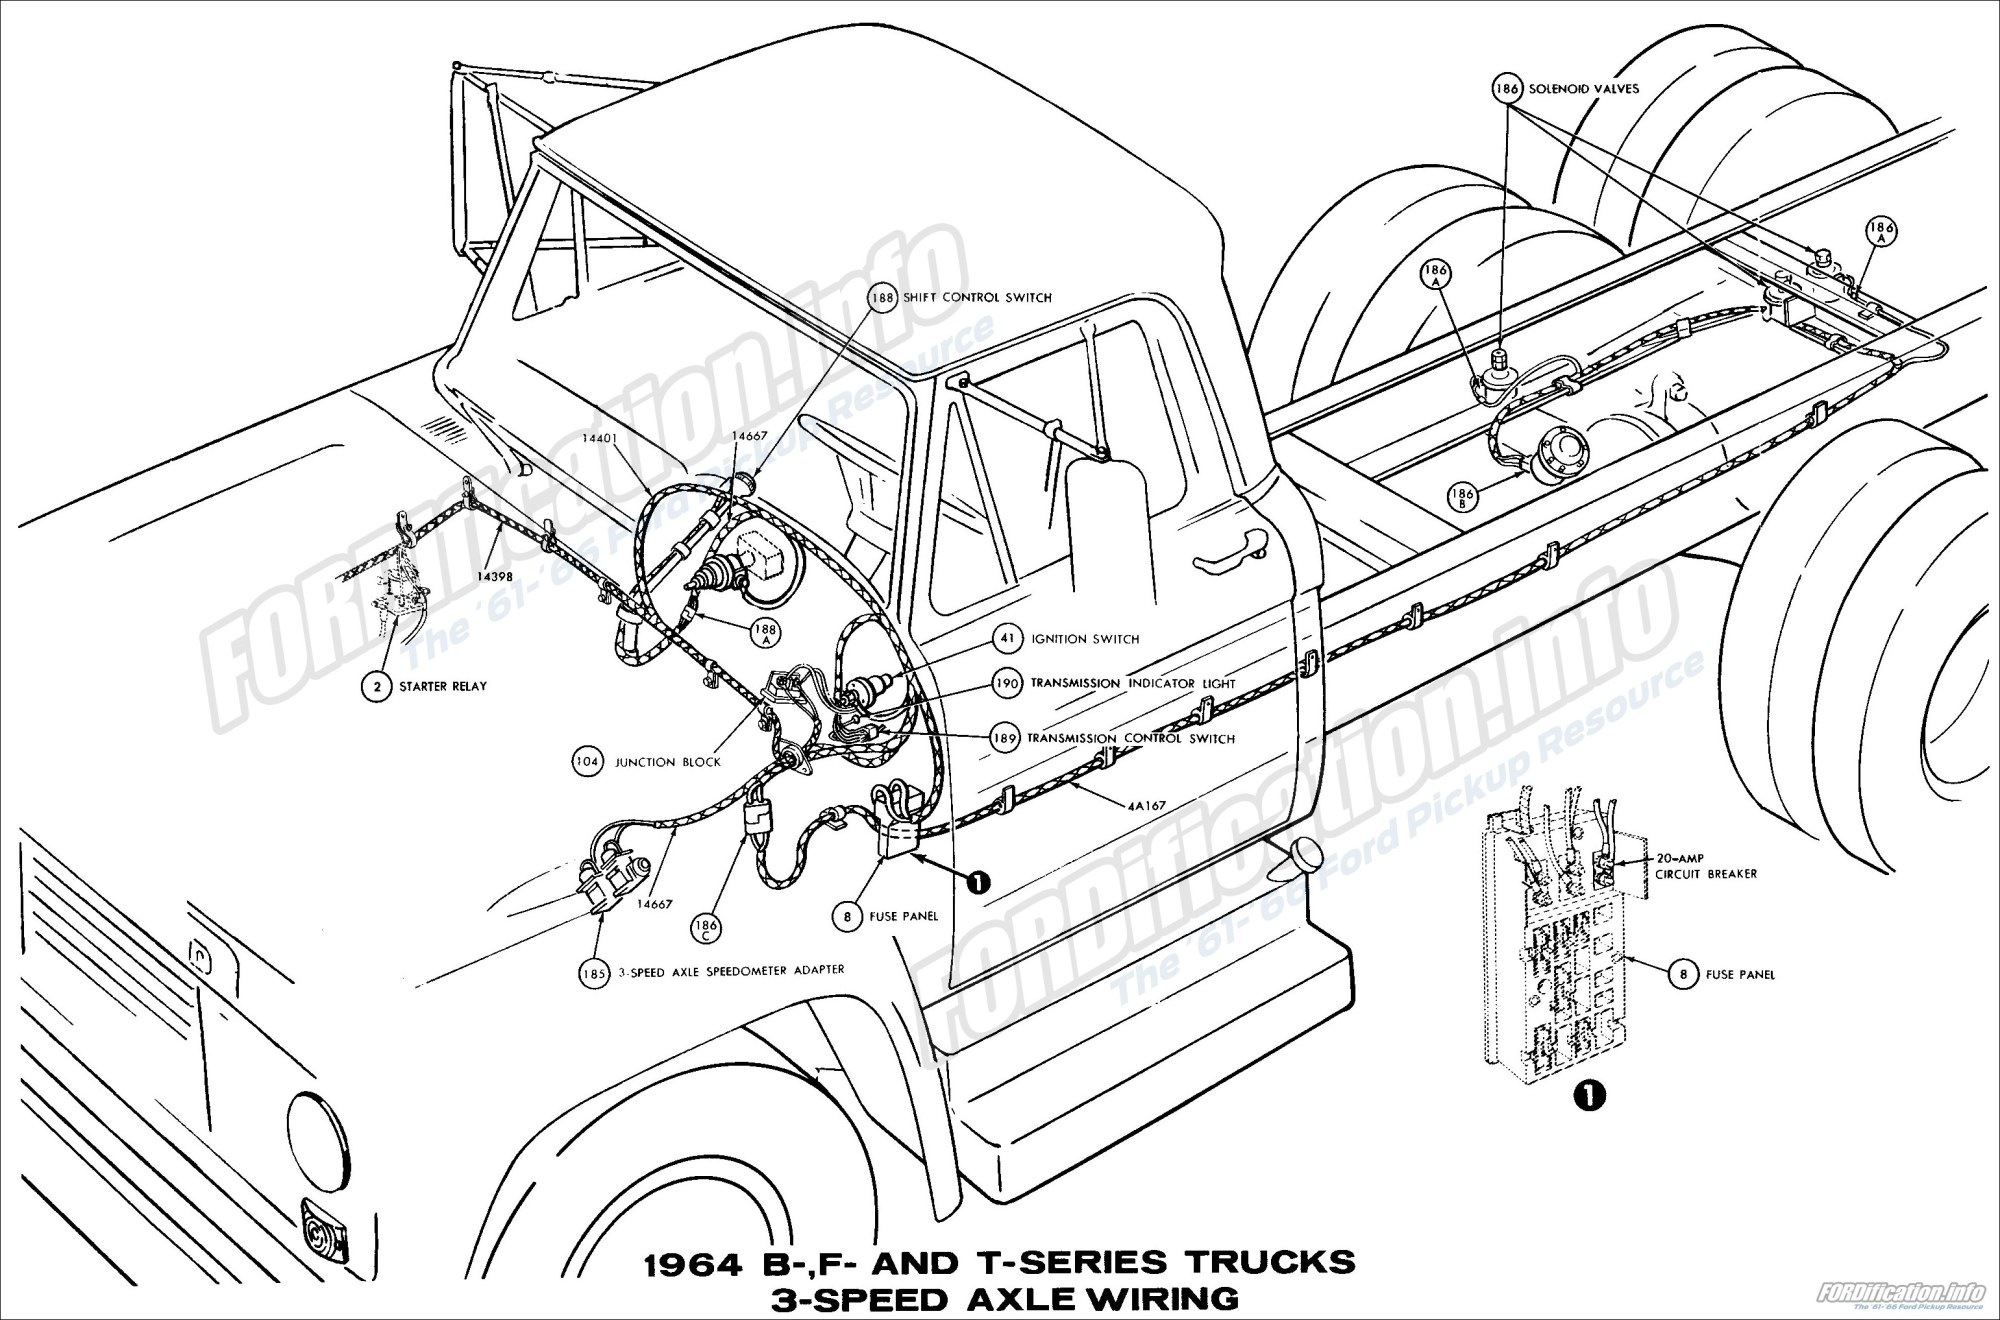 hight resolution of ford pinto steering column wiring diagram ford flex steering column wiring harness 1975 ford steering column